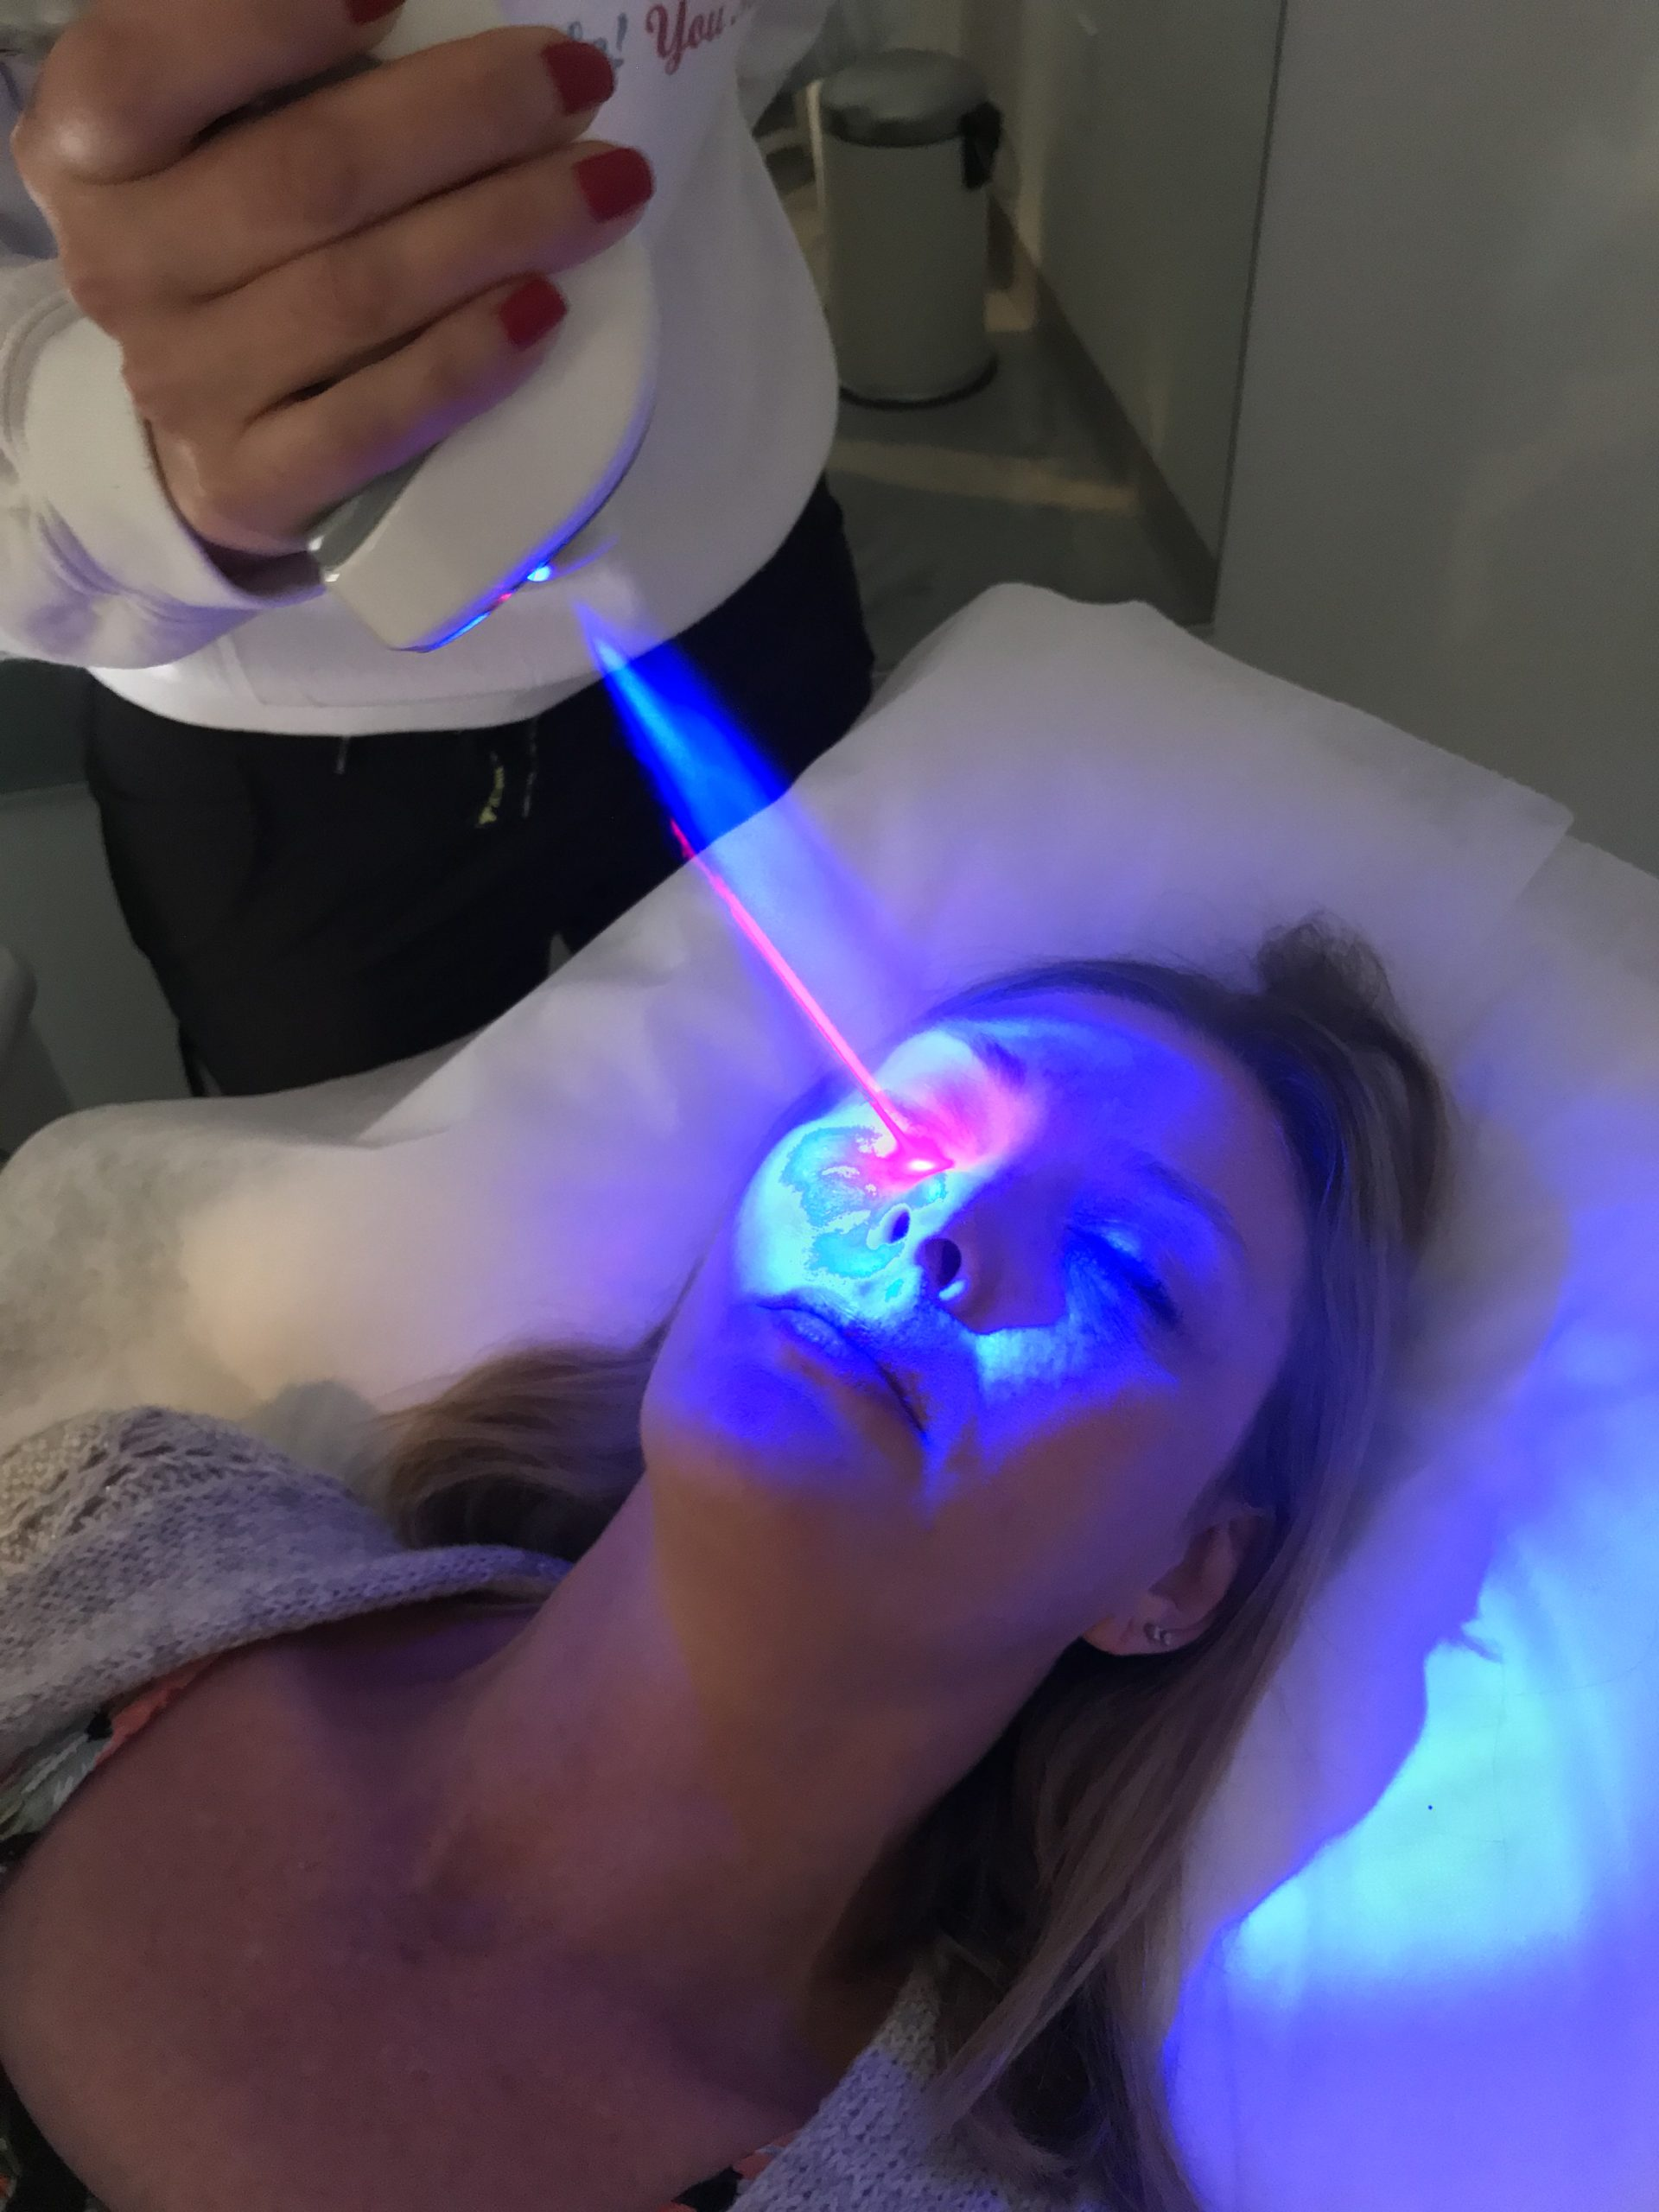 It's absolutely amazing to experience the services of Core Elite Wellness Fit Cryo! How else can a Brand Ambassador represent?? I thoroughly enjoyed the Cryo Penguin Glow Facial! Look out wrinkles, puffiness, and inflammation! So many wonderful benefits, be sure to check it out!